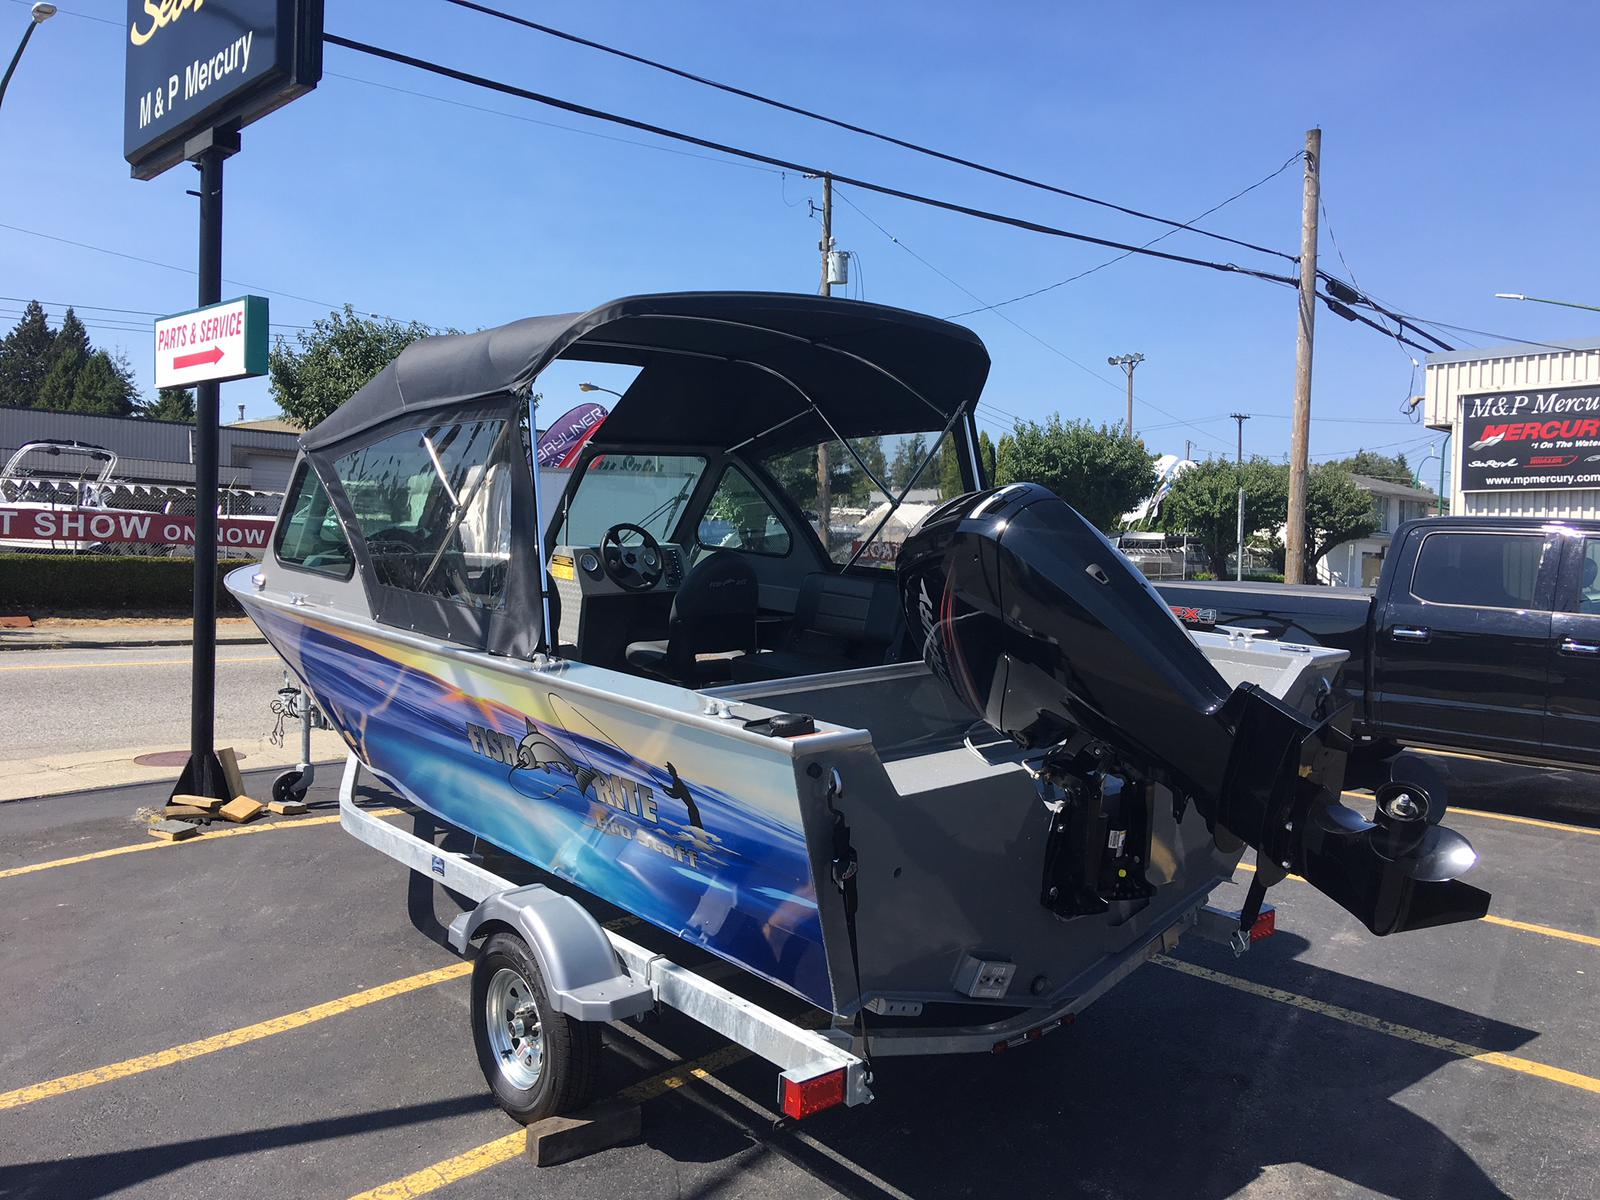 2019 Fish Rite Aluminum boat for sale, model of the boat is 18 Stalker & Image # 2 of 3